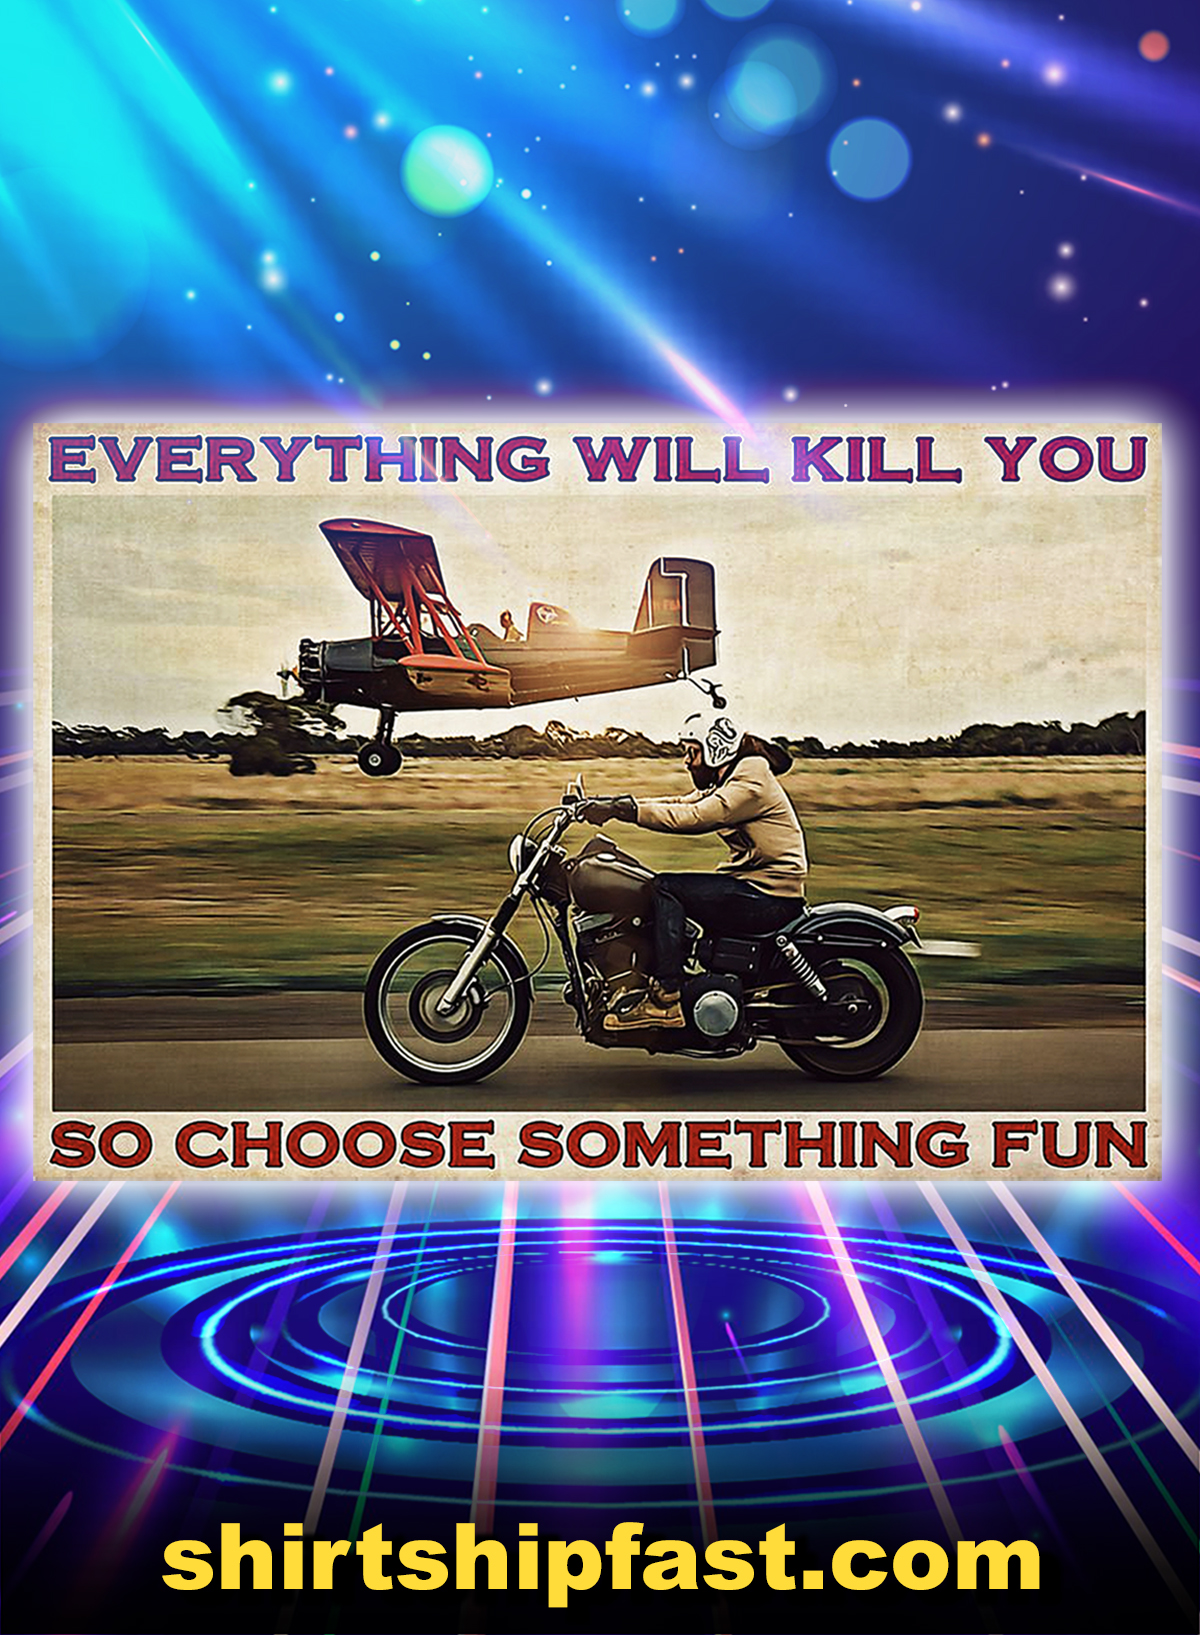 Motorbike planes everything will kill you so choose something fun poster - A1